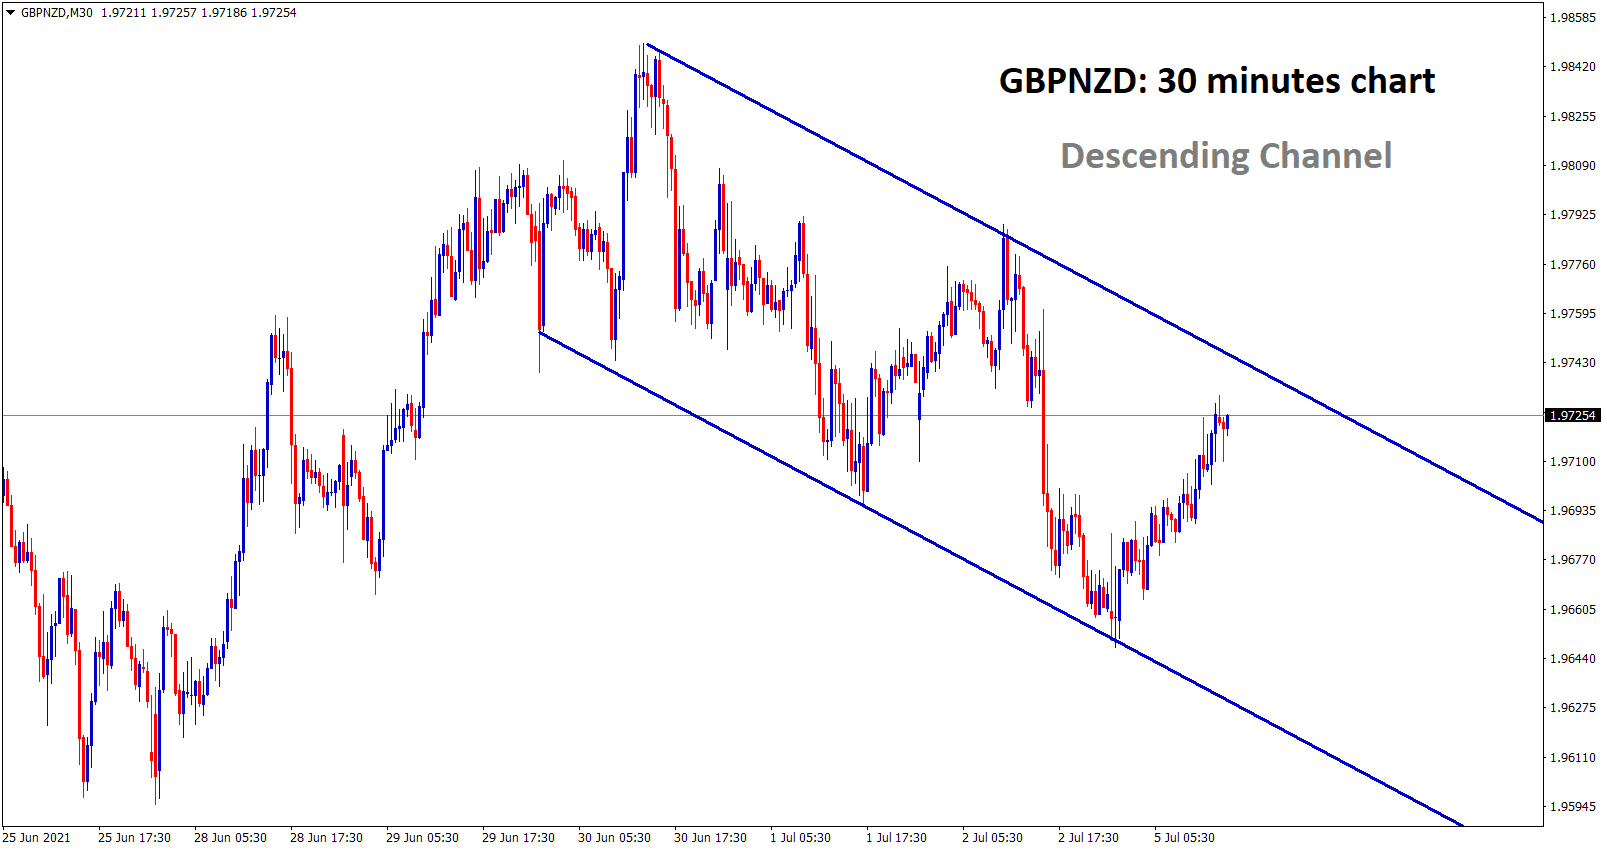 descending channel found in gbpnzd 30 minutes timeframe